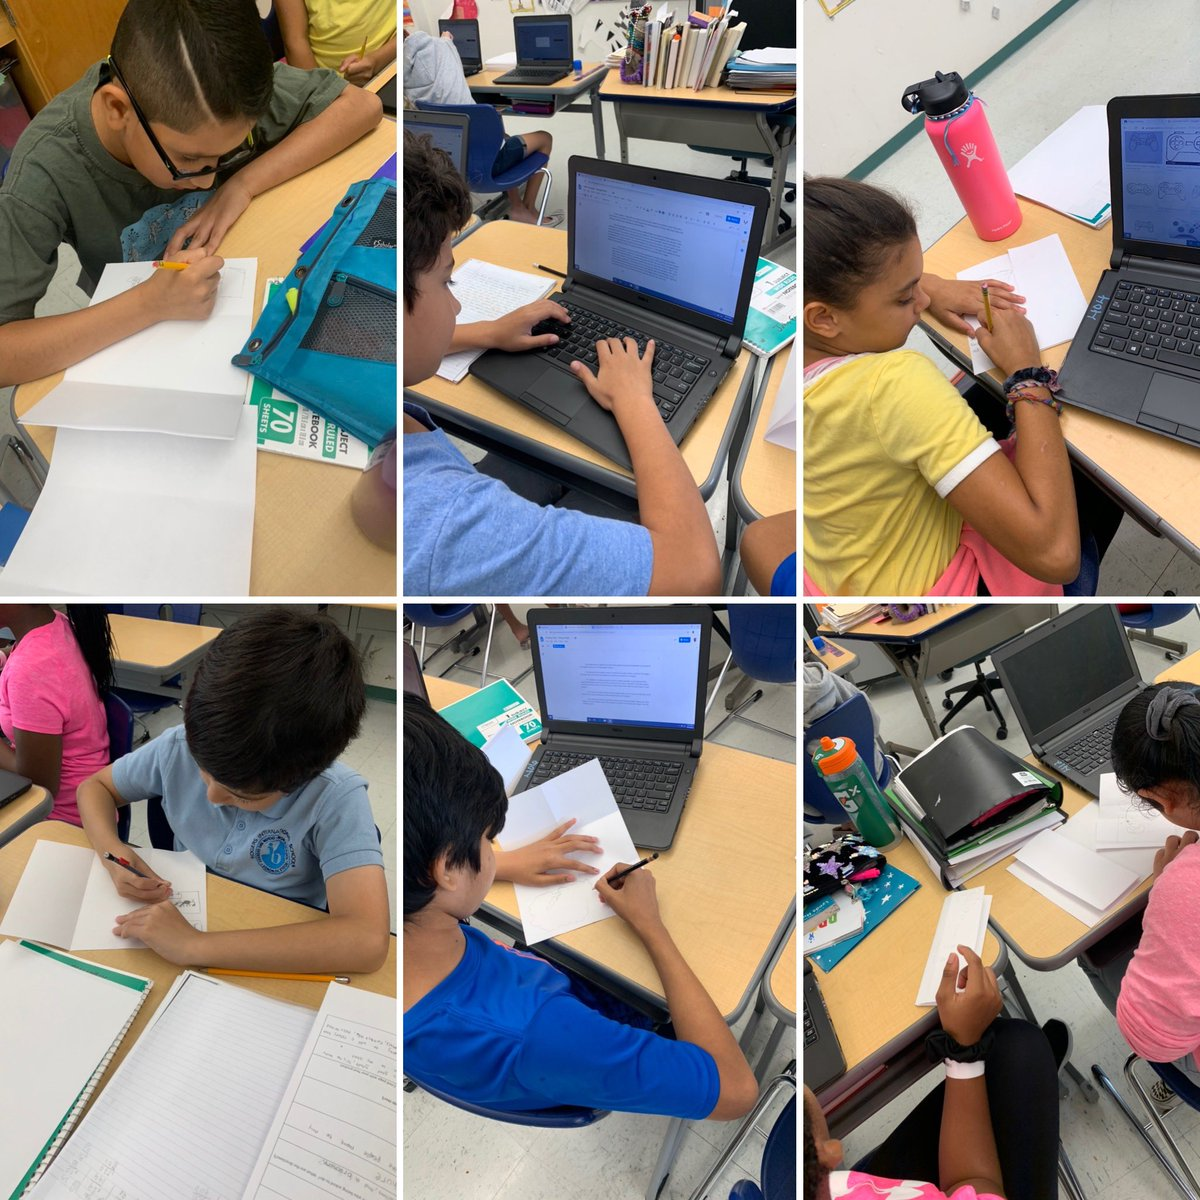 Using our design briefs to create paper and pencil design sketches of travel brochures for our fantasy islands! #mypdesign #developingideas #criterionb #fantasyisland #geography #graphicdesign #spsheartpic.twitter.com/un4xCKHihG – at Rogers International School